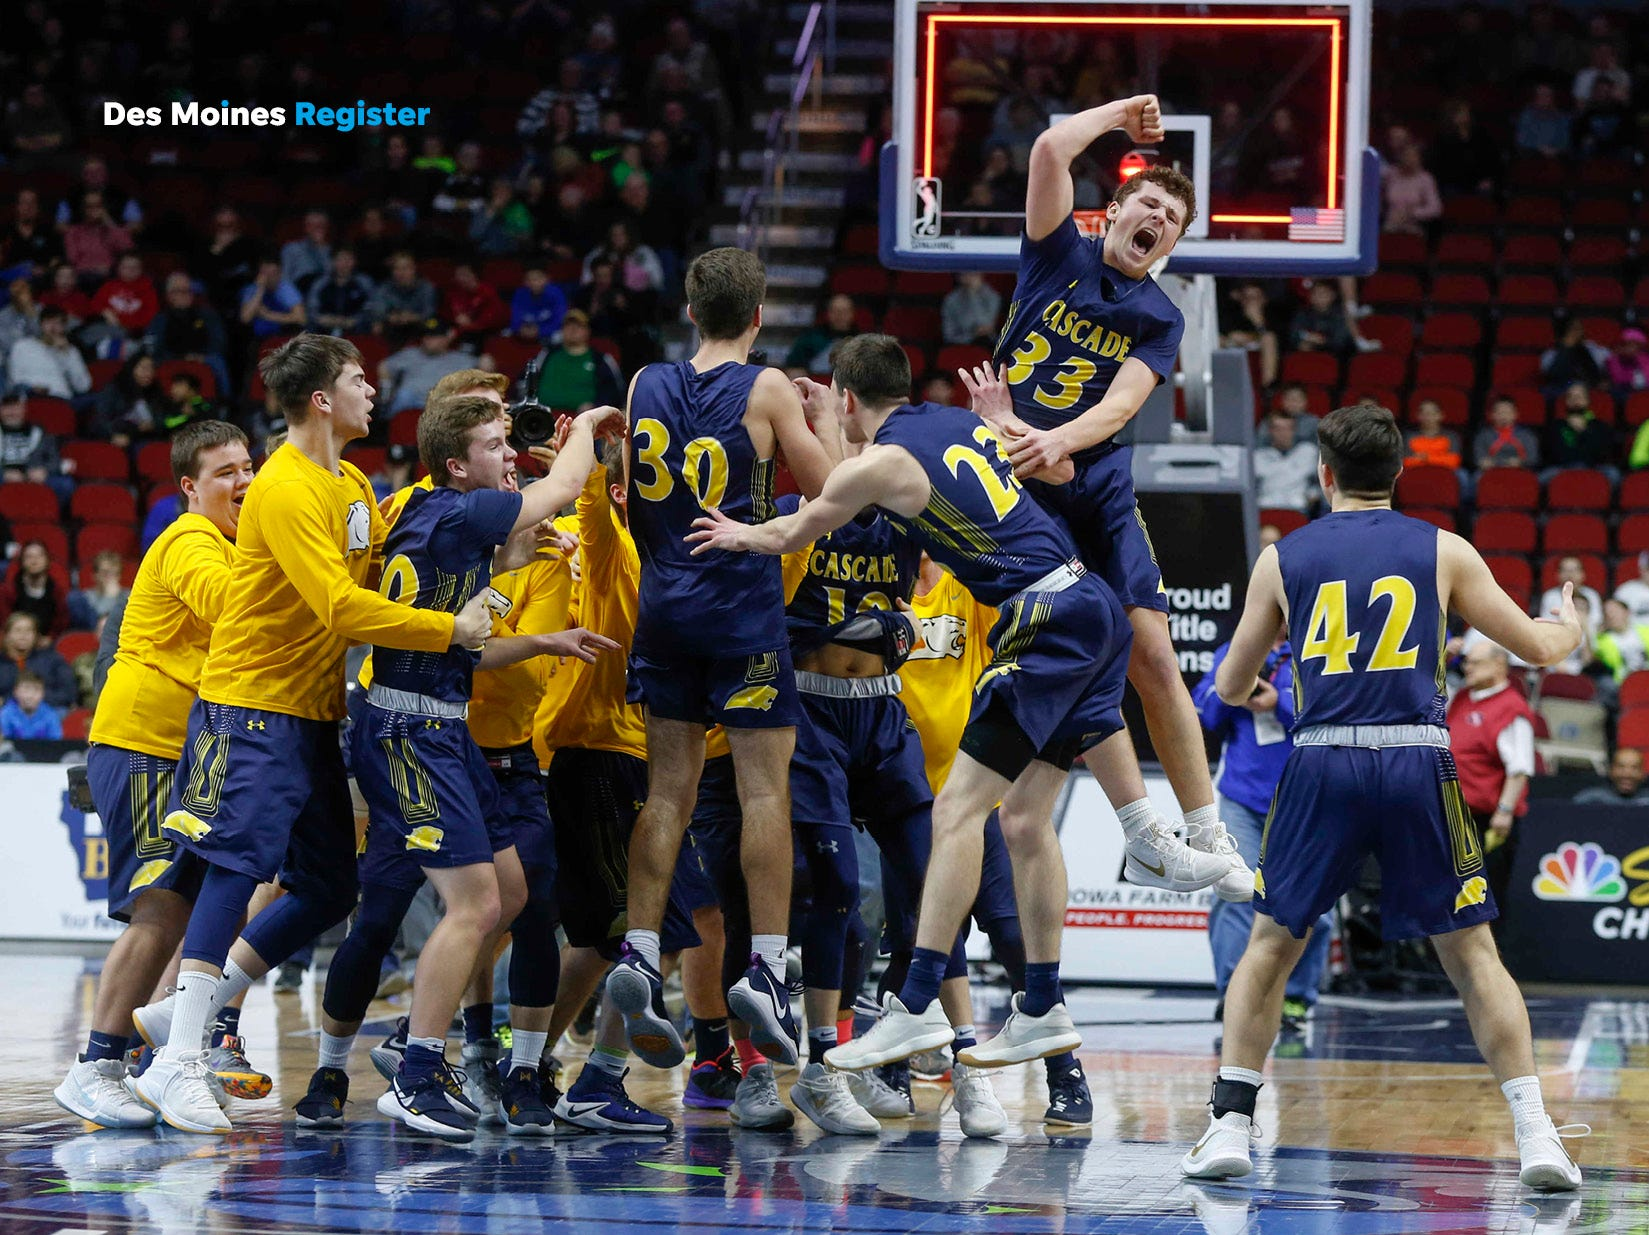 "<b>March: </b> The Cascade boys' basketball team celebrates after winning the school's first state tournament title. The Register's 2019 photo calendar is available for $18 at <a href=""https://shopdmregister.com/collections/photo-gifts/products/2019-des-moines-register-photo-calendar?utm_source=desmoinesregister&utm_medium=link&utm_campaign=launch_gallery"" target=""_blank"">ShopDMRegister.com. </a>"